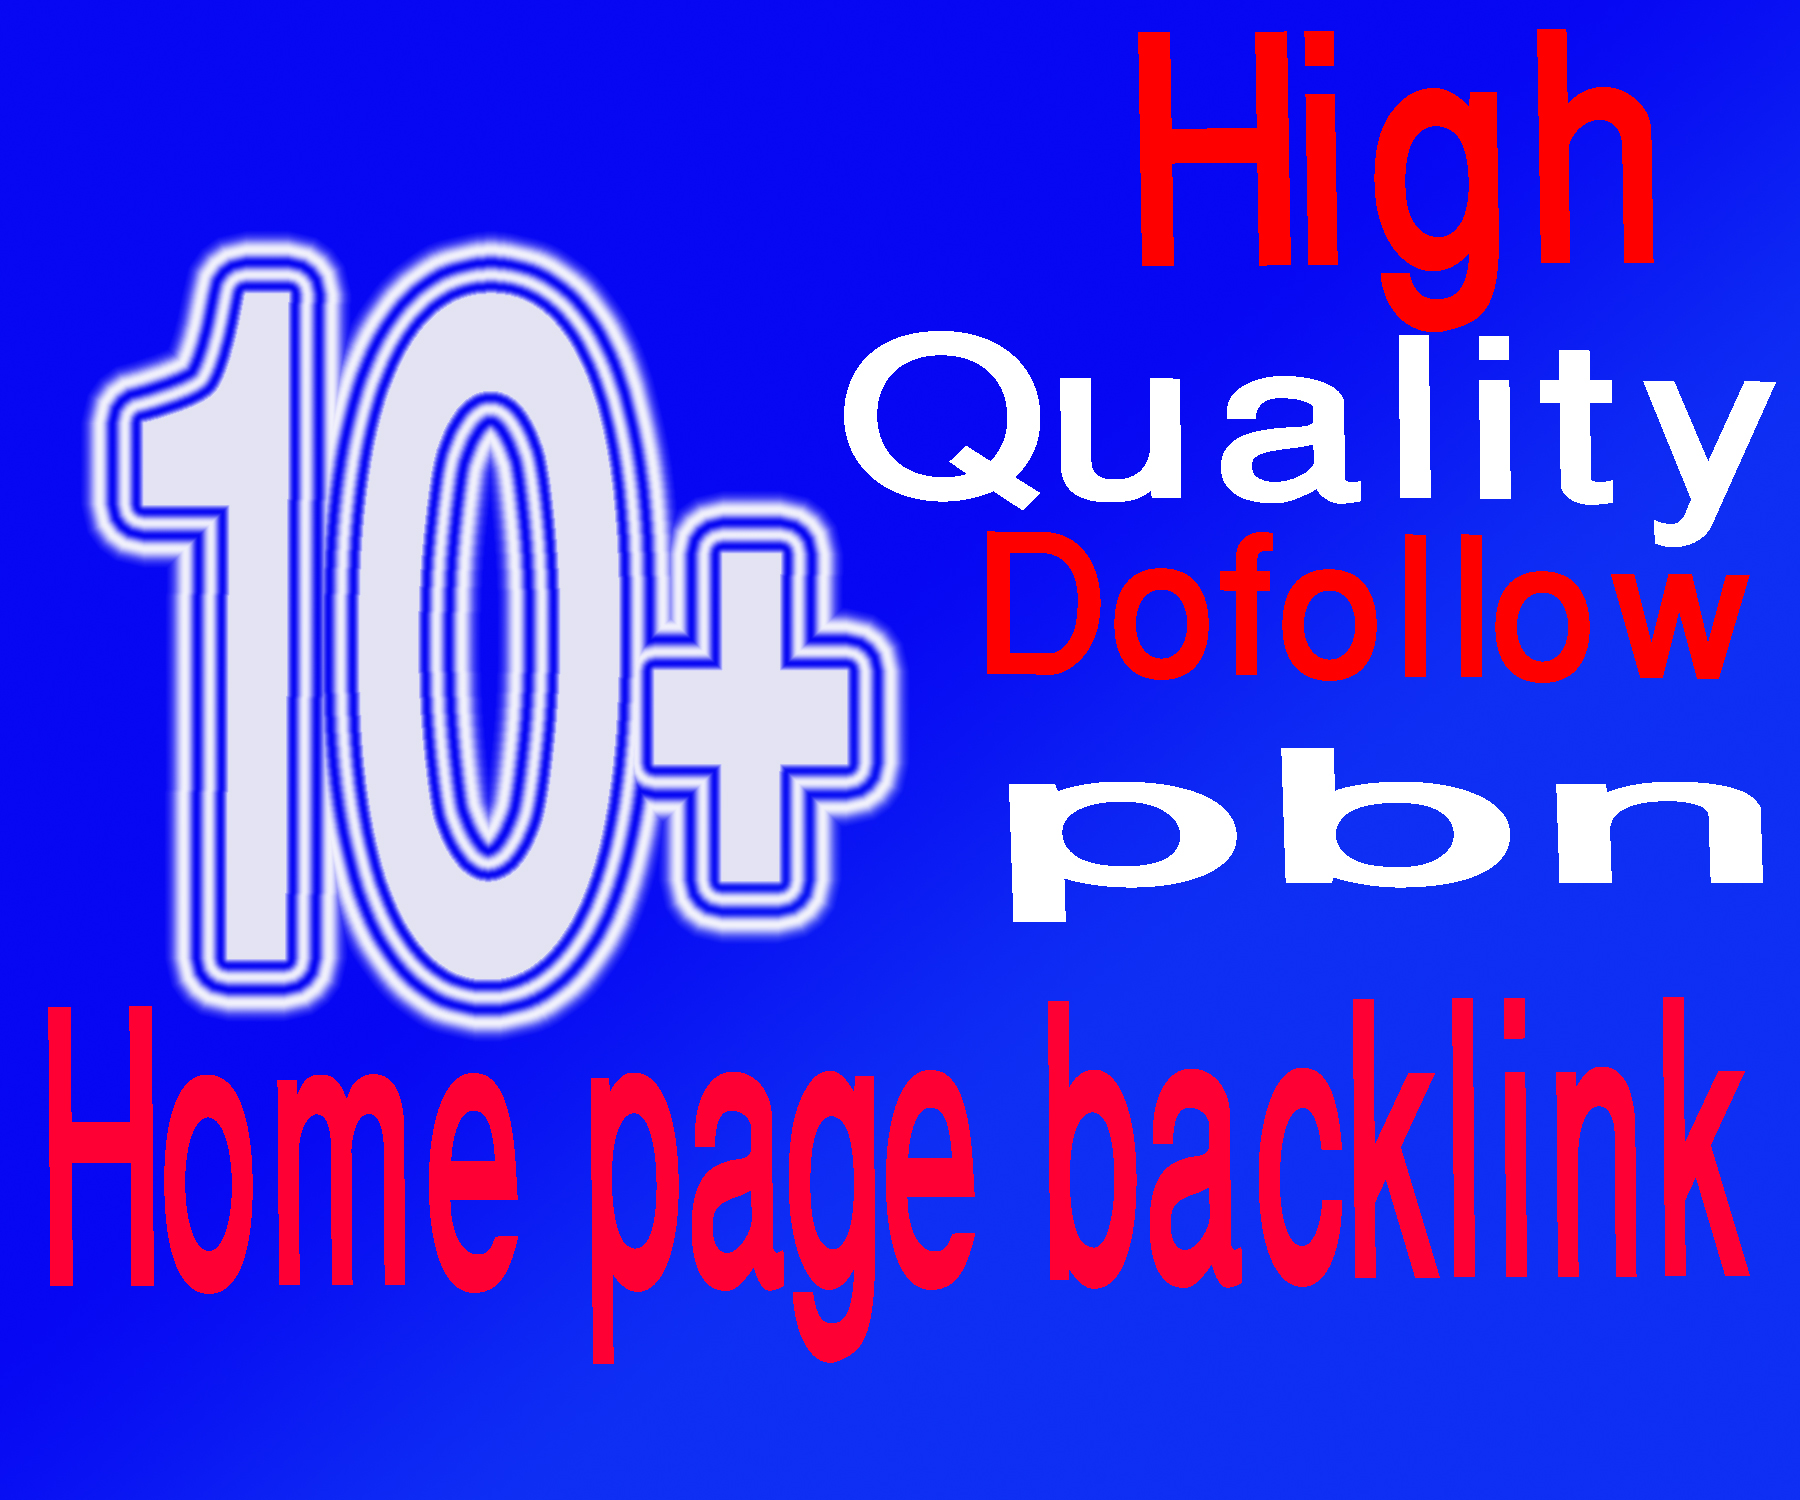 High quality Manual DoFollow PBN Backlinks for your site